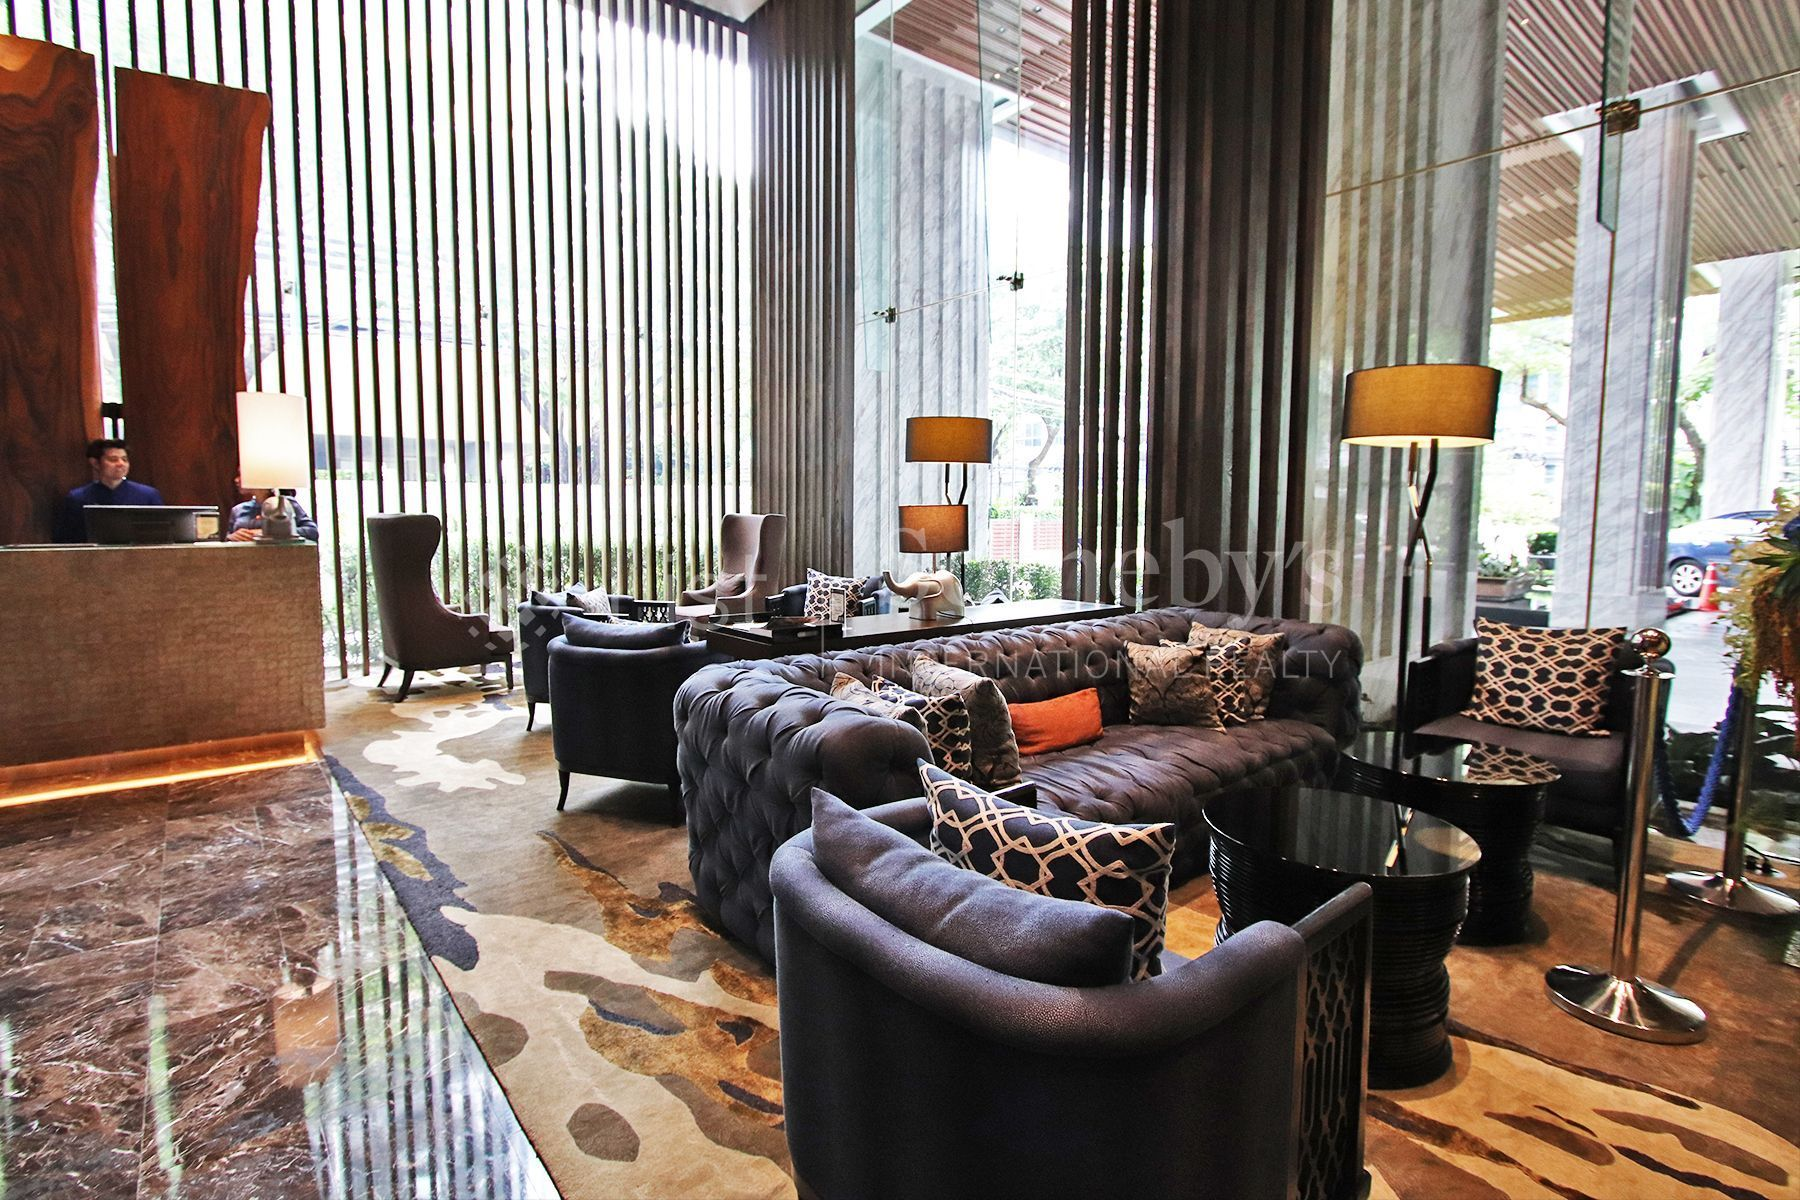 the-pillars-executive-one-bedroom-137-pillars-suites-residences-bangkok 19